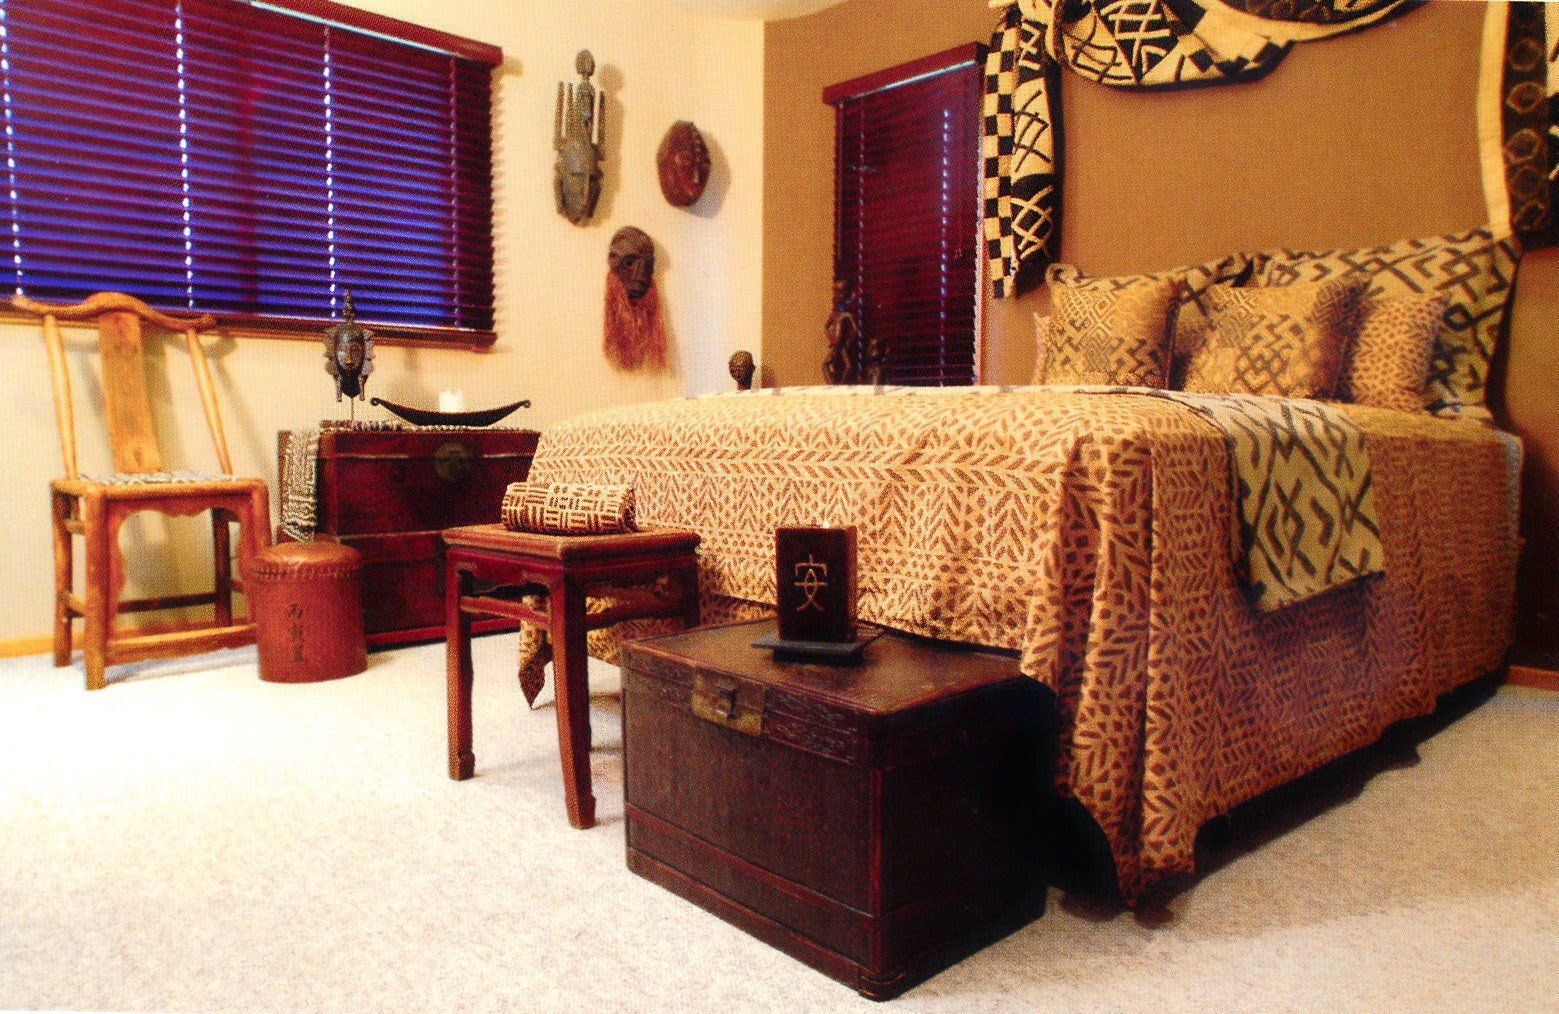 Foundation dezin decor bedroom design in african way for African home designs